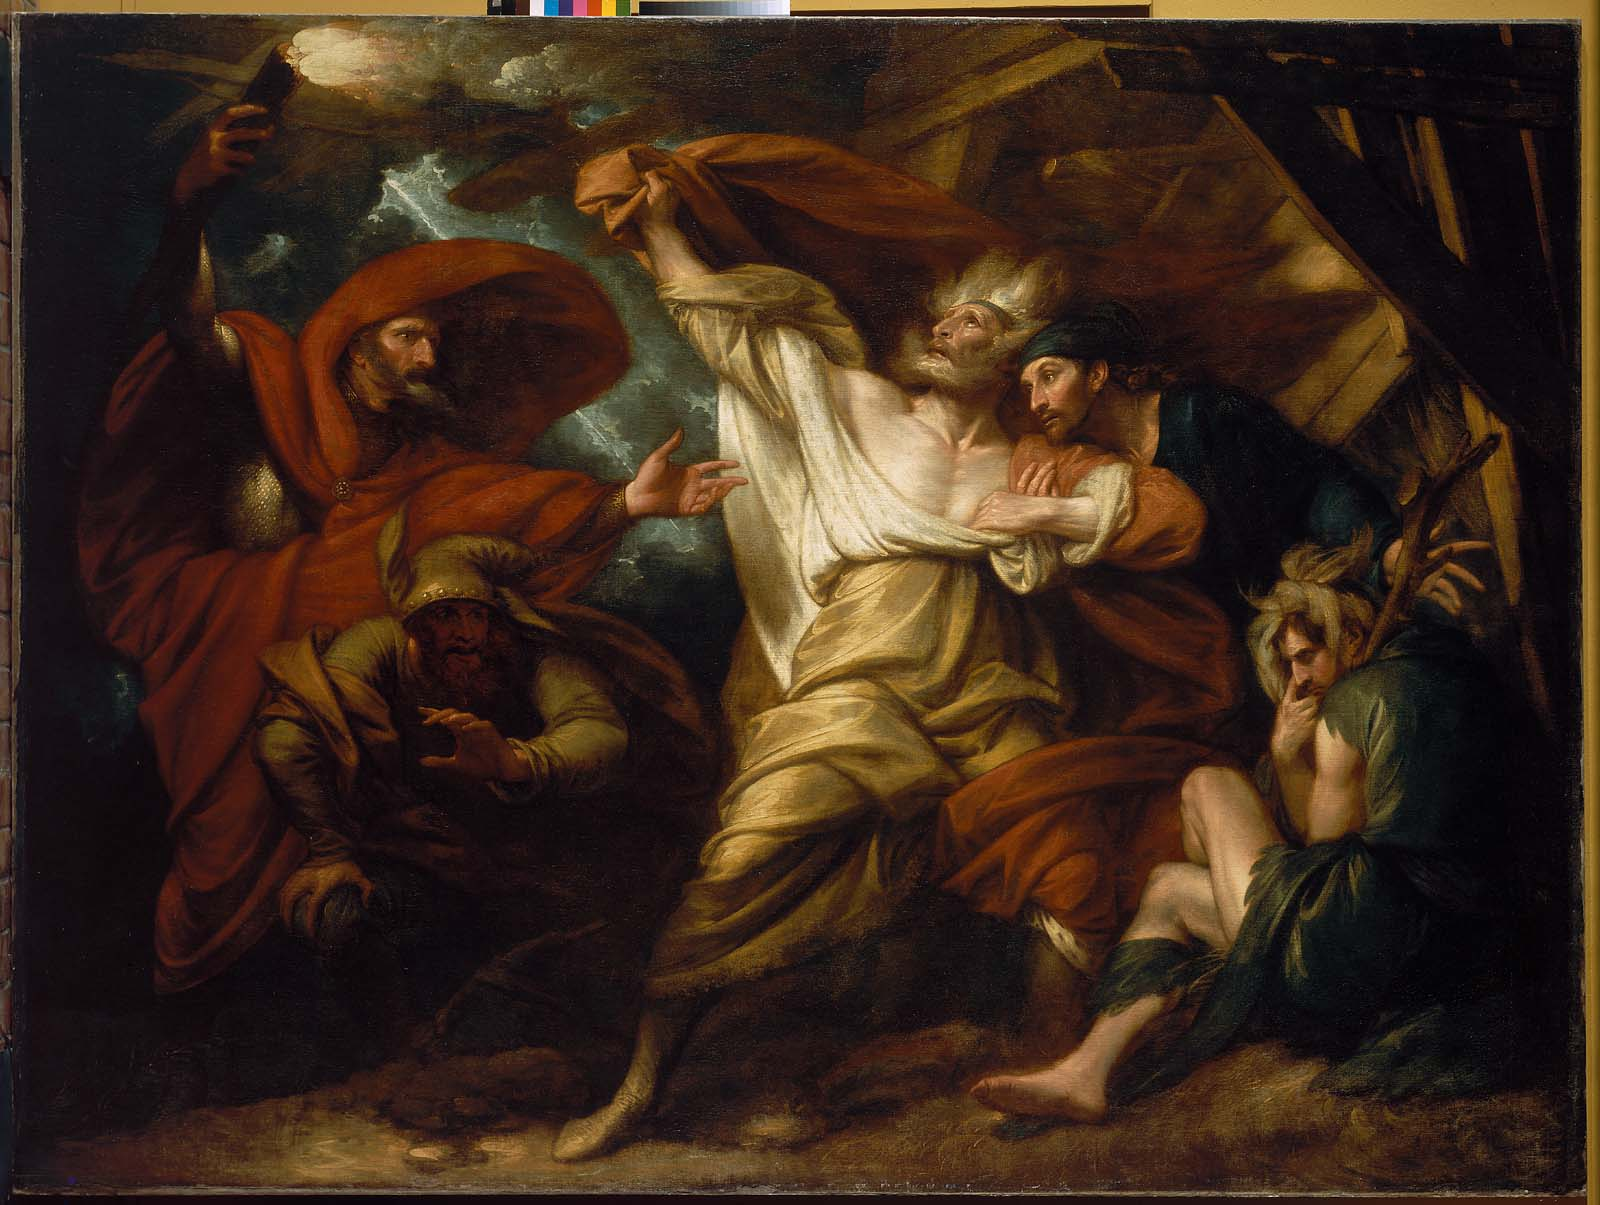 File:Benjamin West King Lear Act III scene 4.jpg